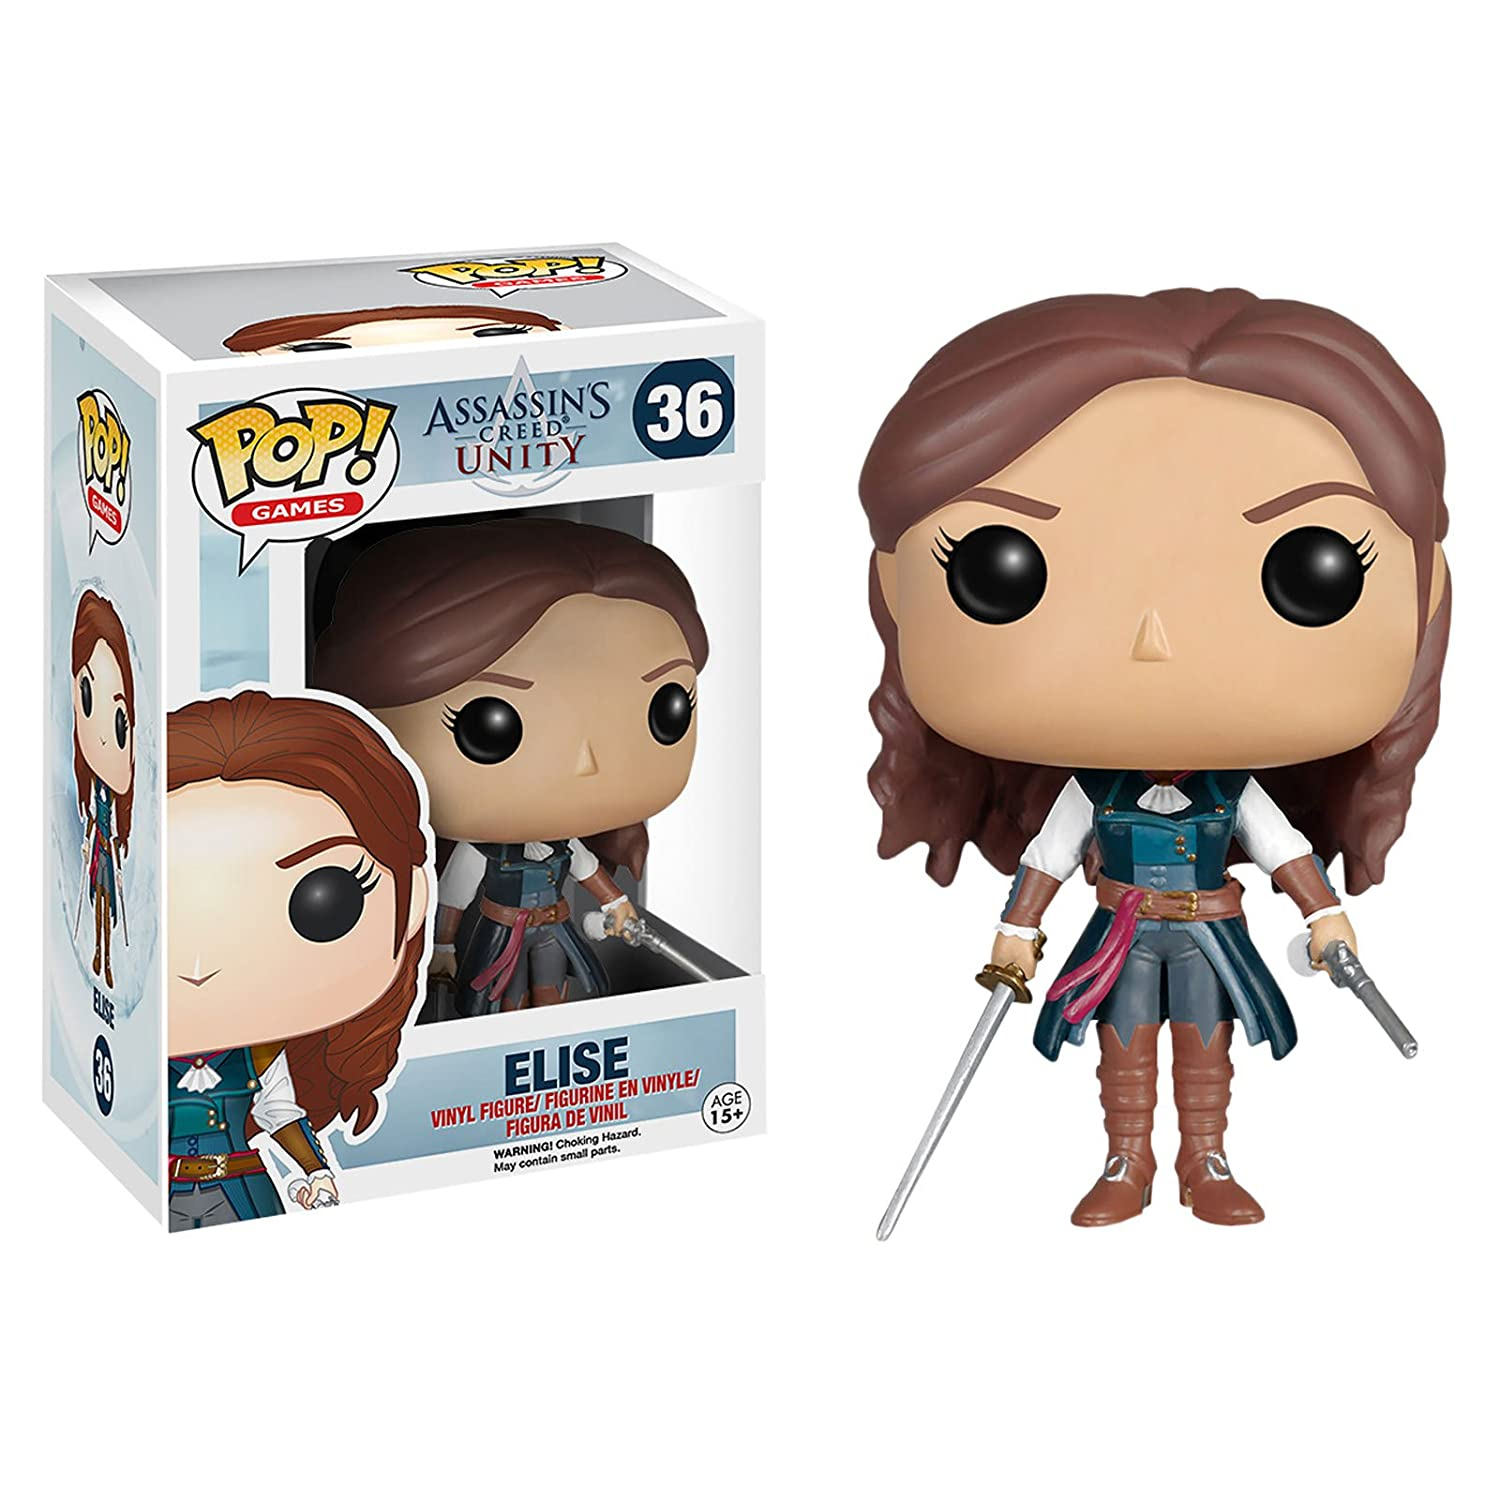 Funko Assassin's Creed Unity POP  Games Elise Vinyl Figure  36 by USA